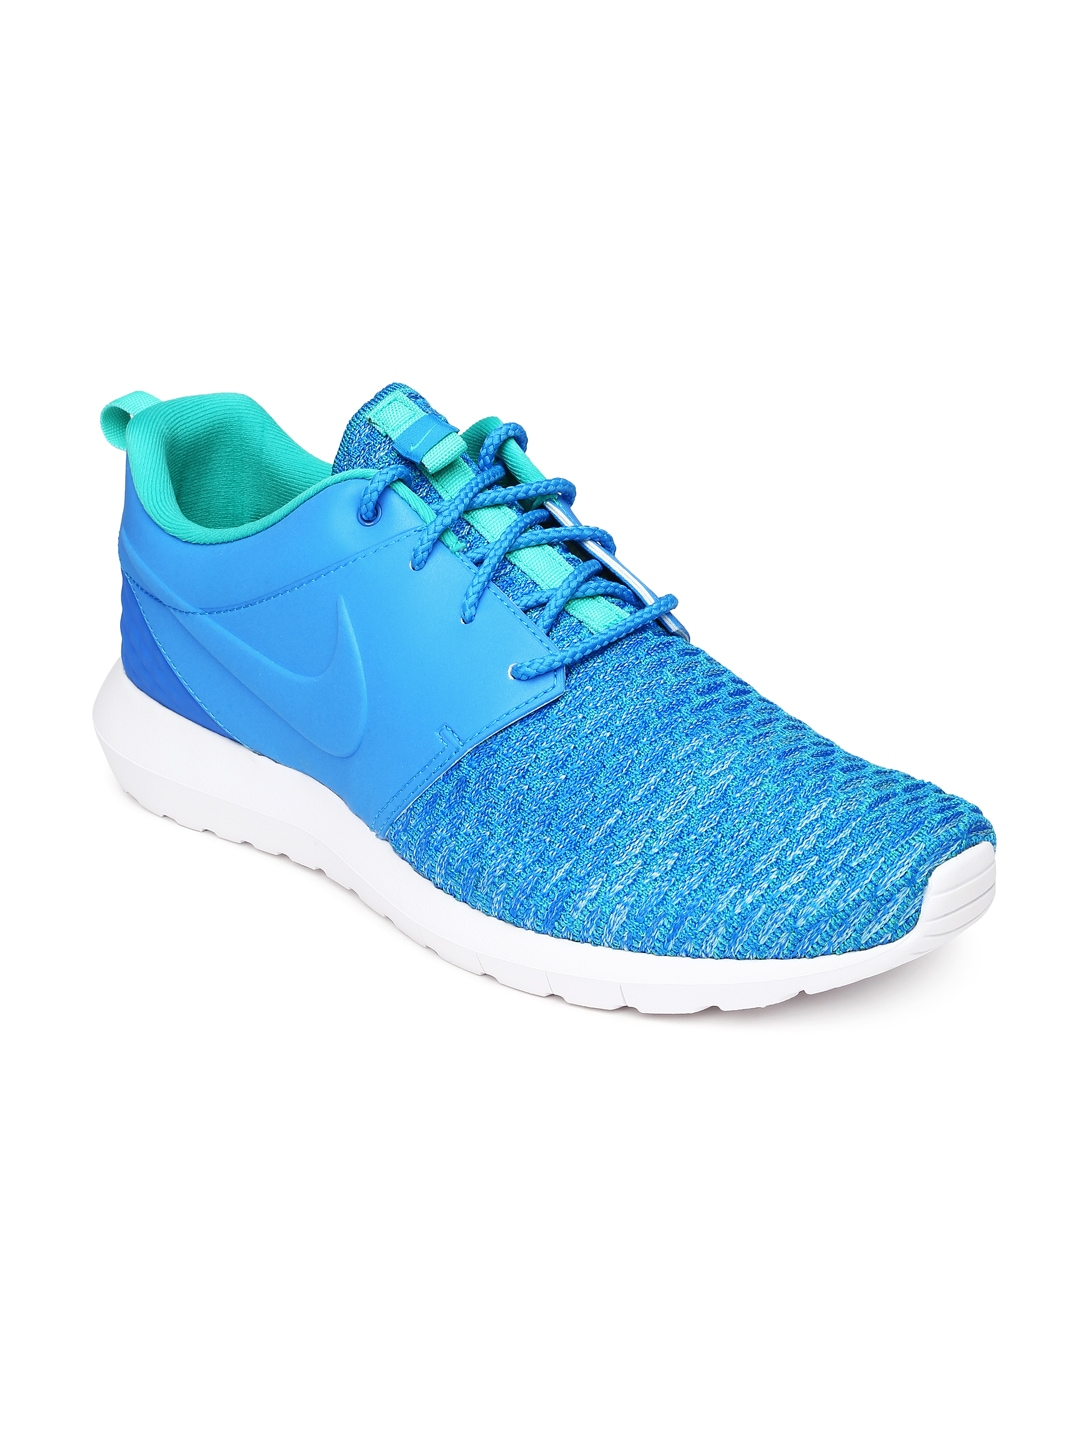 dirt cheap casual shoes sneakers for cheap Custom Nike Dual Fusion Non Slip Shoes For Men Restaurant   Law Lanka